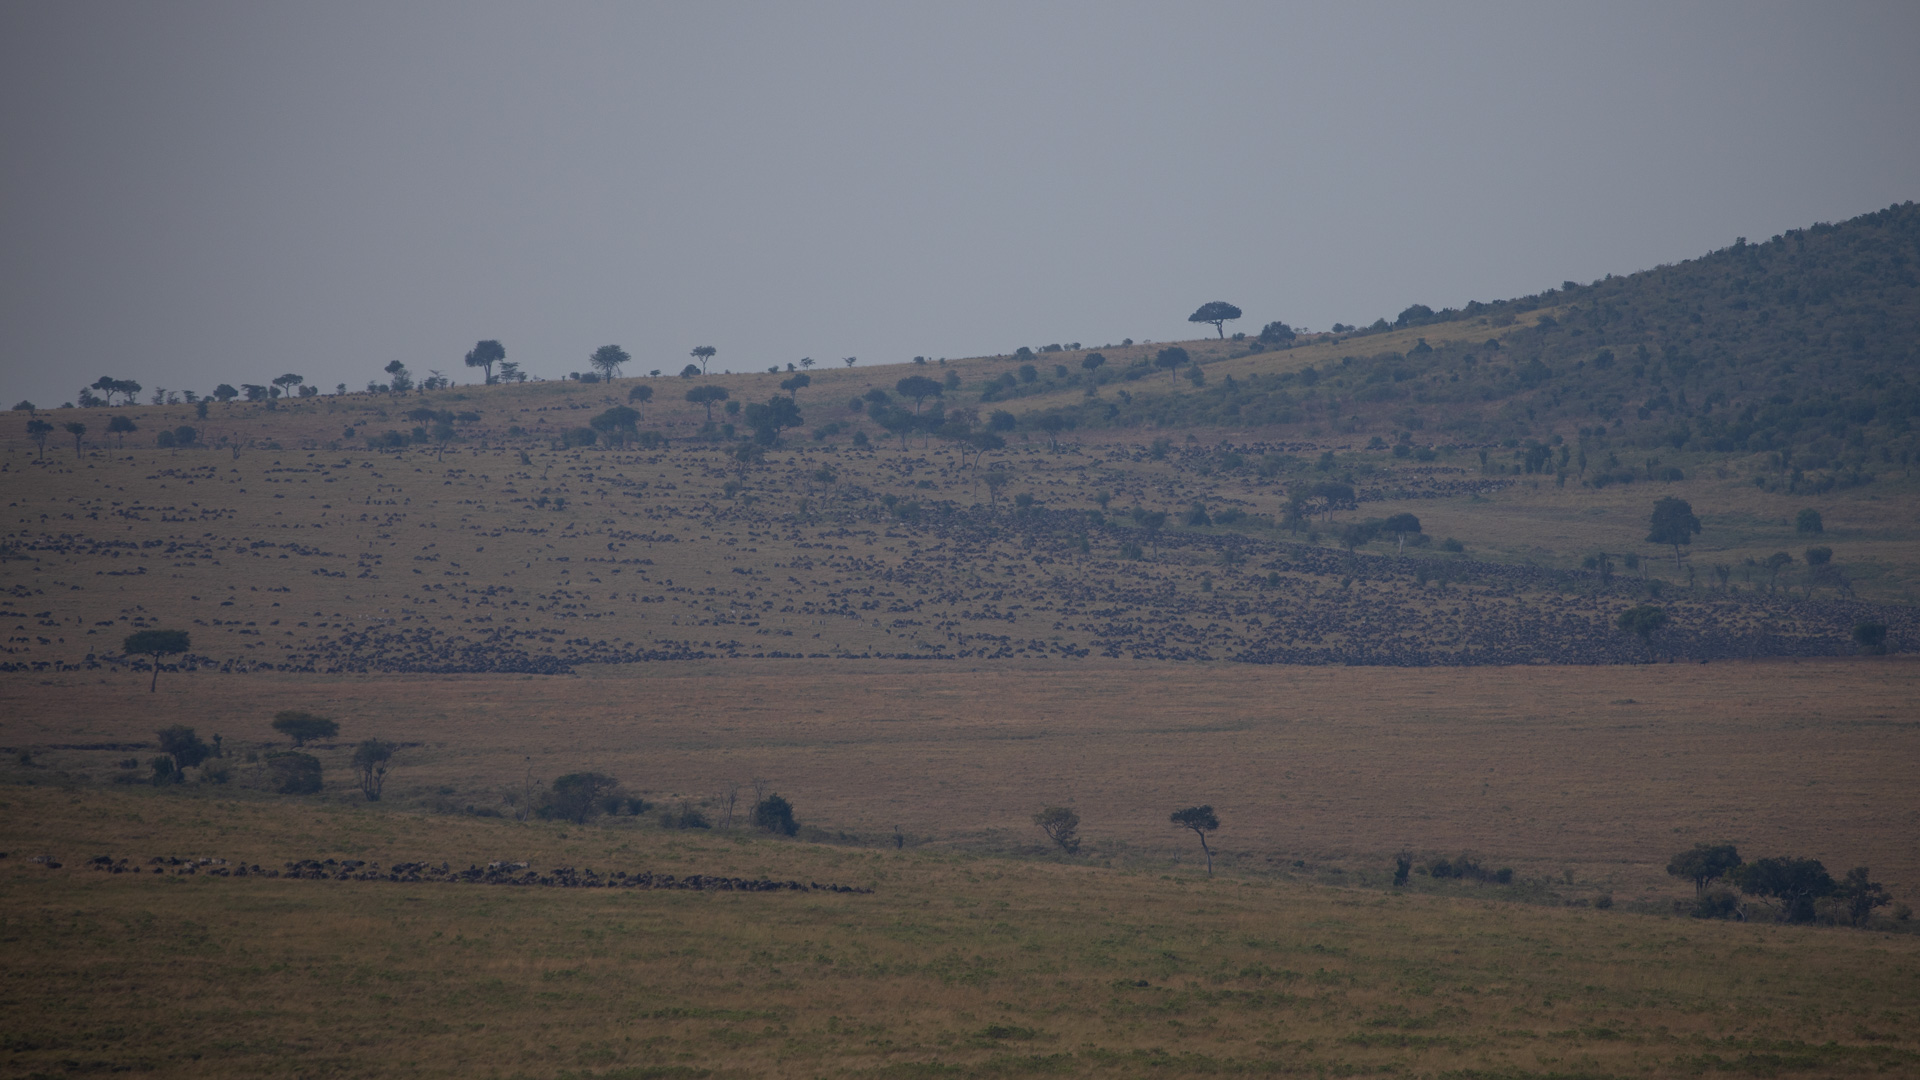 wildebeest from afar